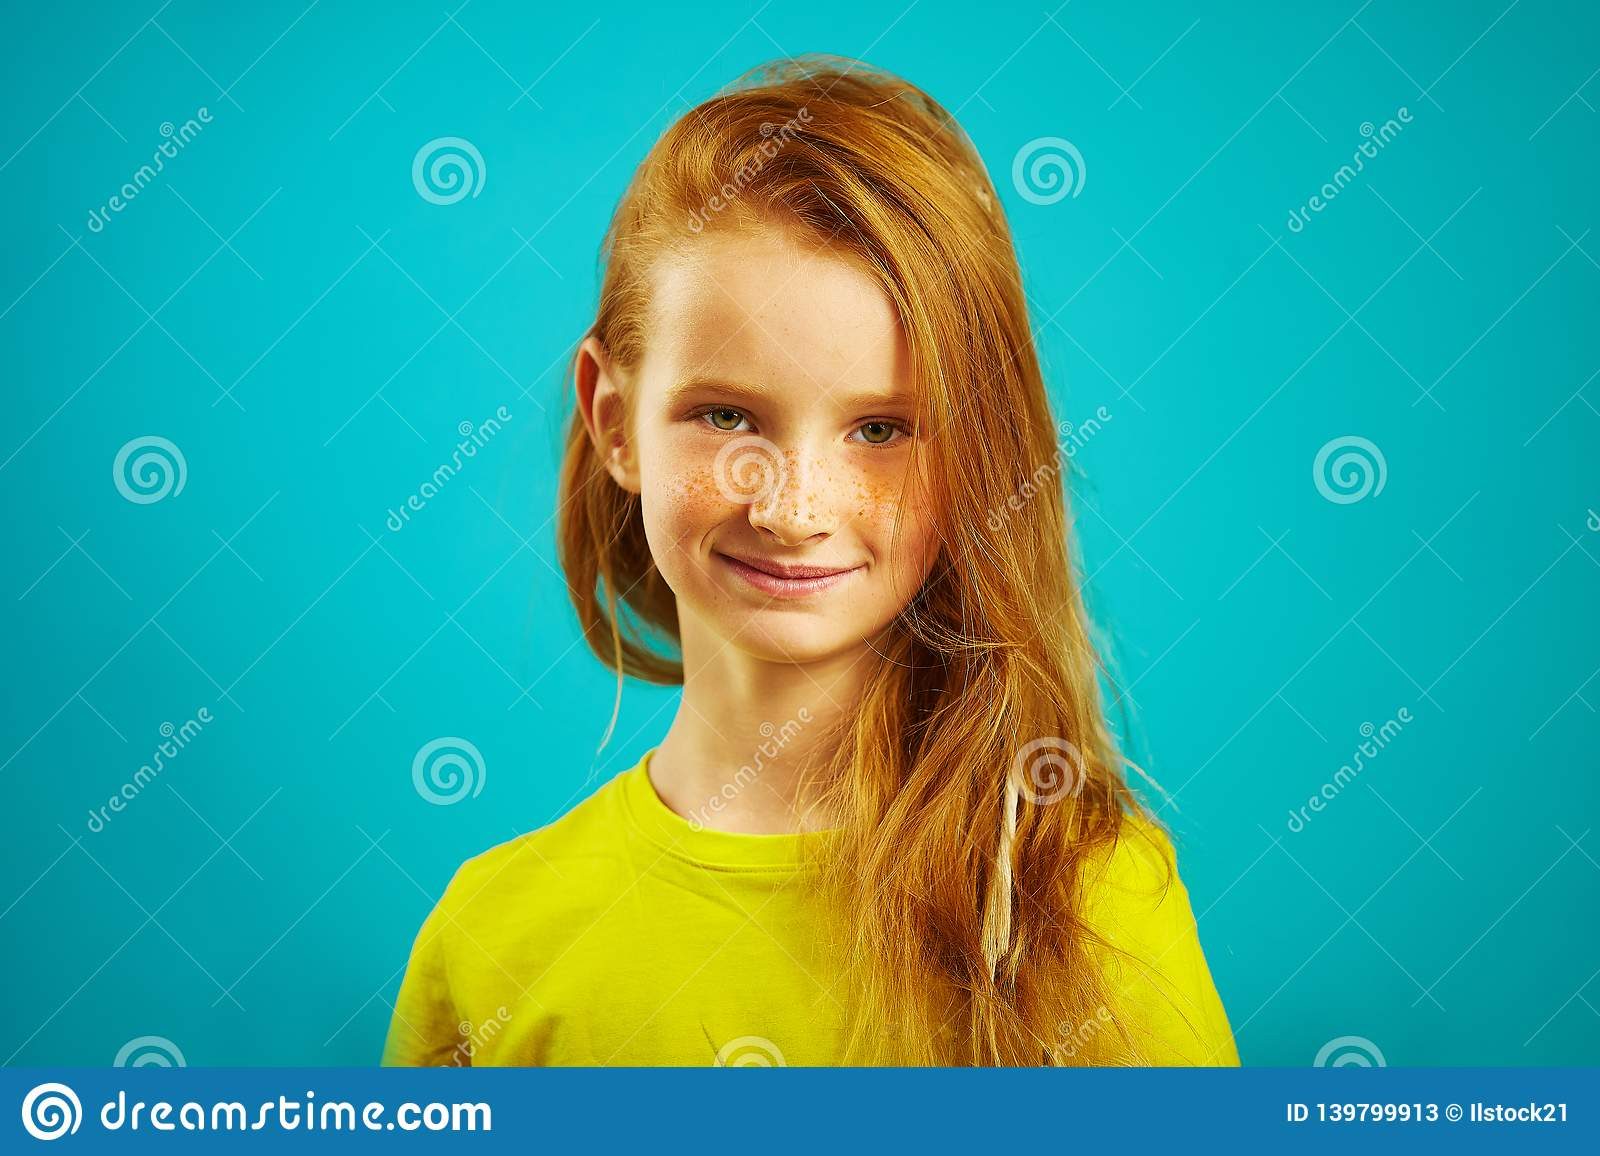 Portrait of cute seven years old girl with red hair and beautiful freckles, wears yellow t-shirt, expresses sincere